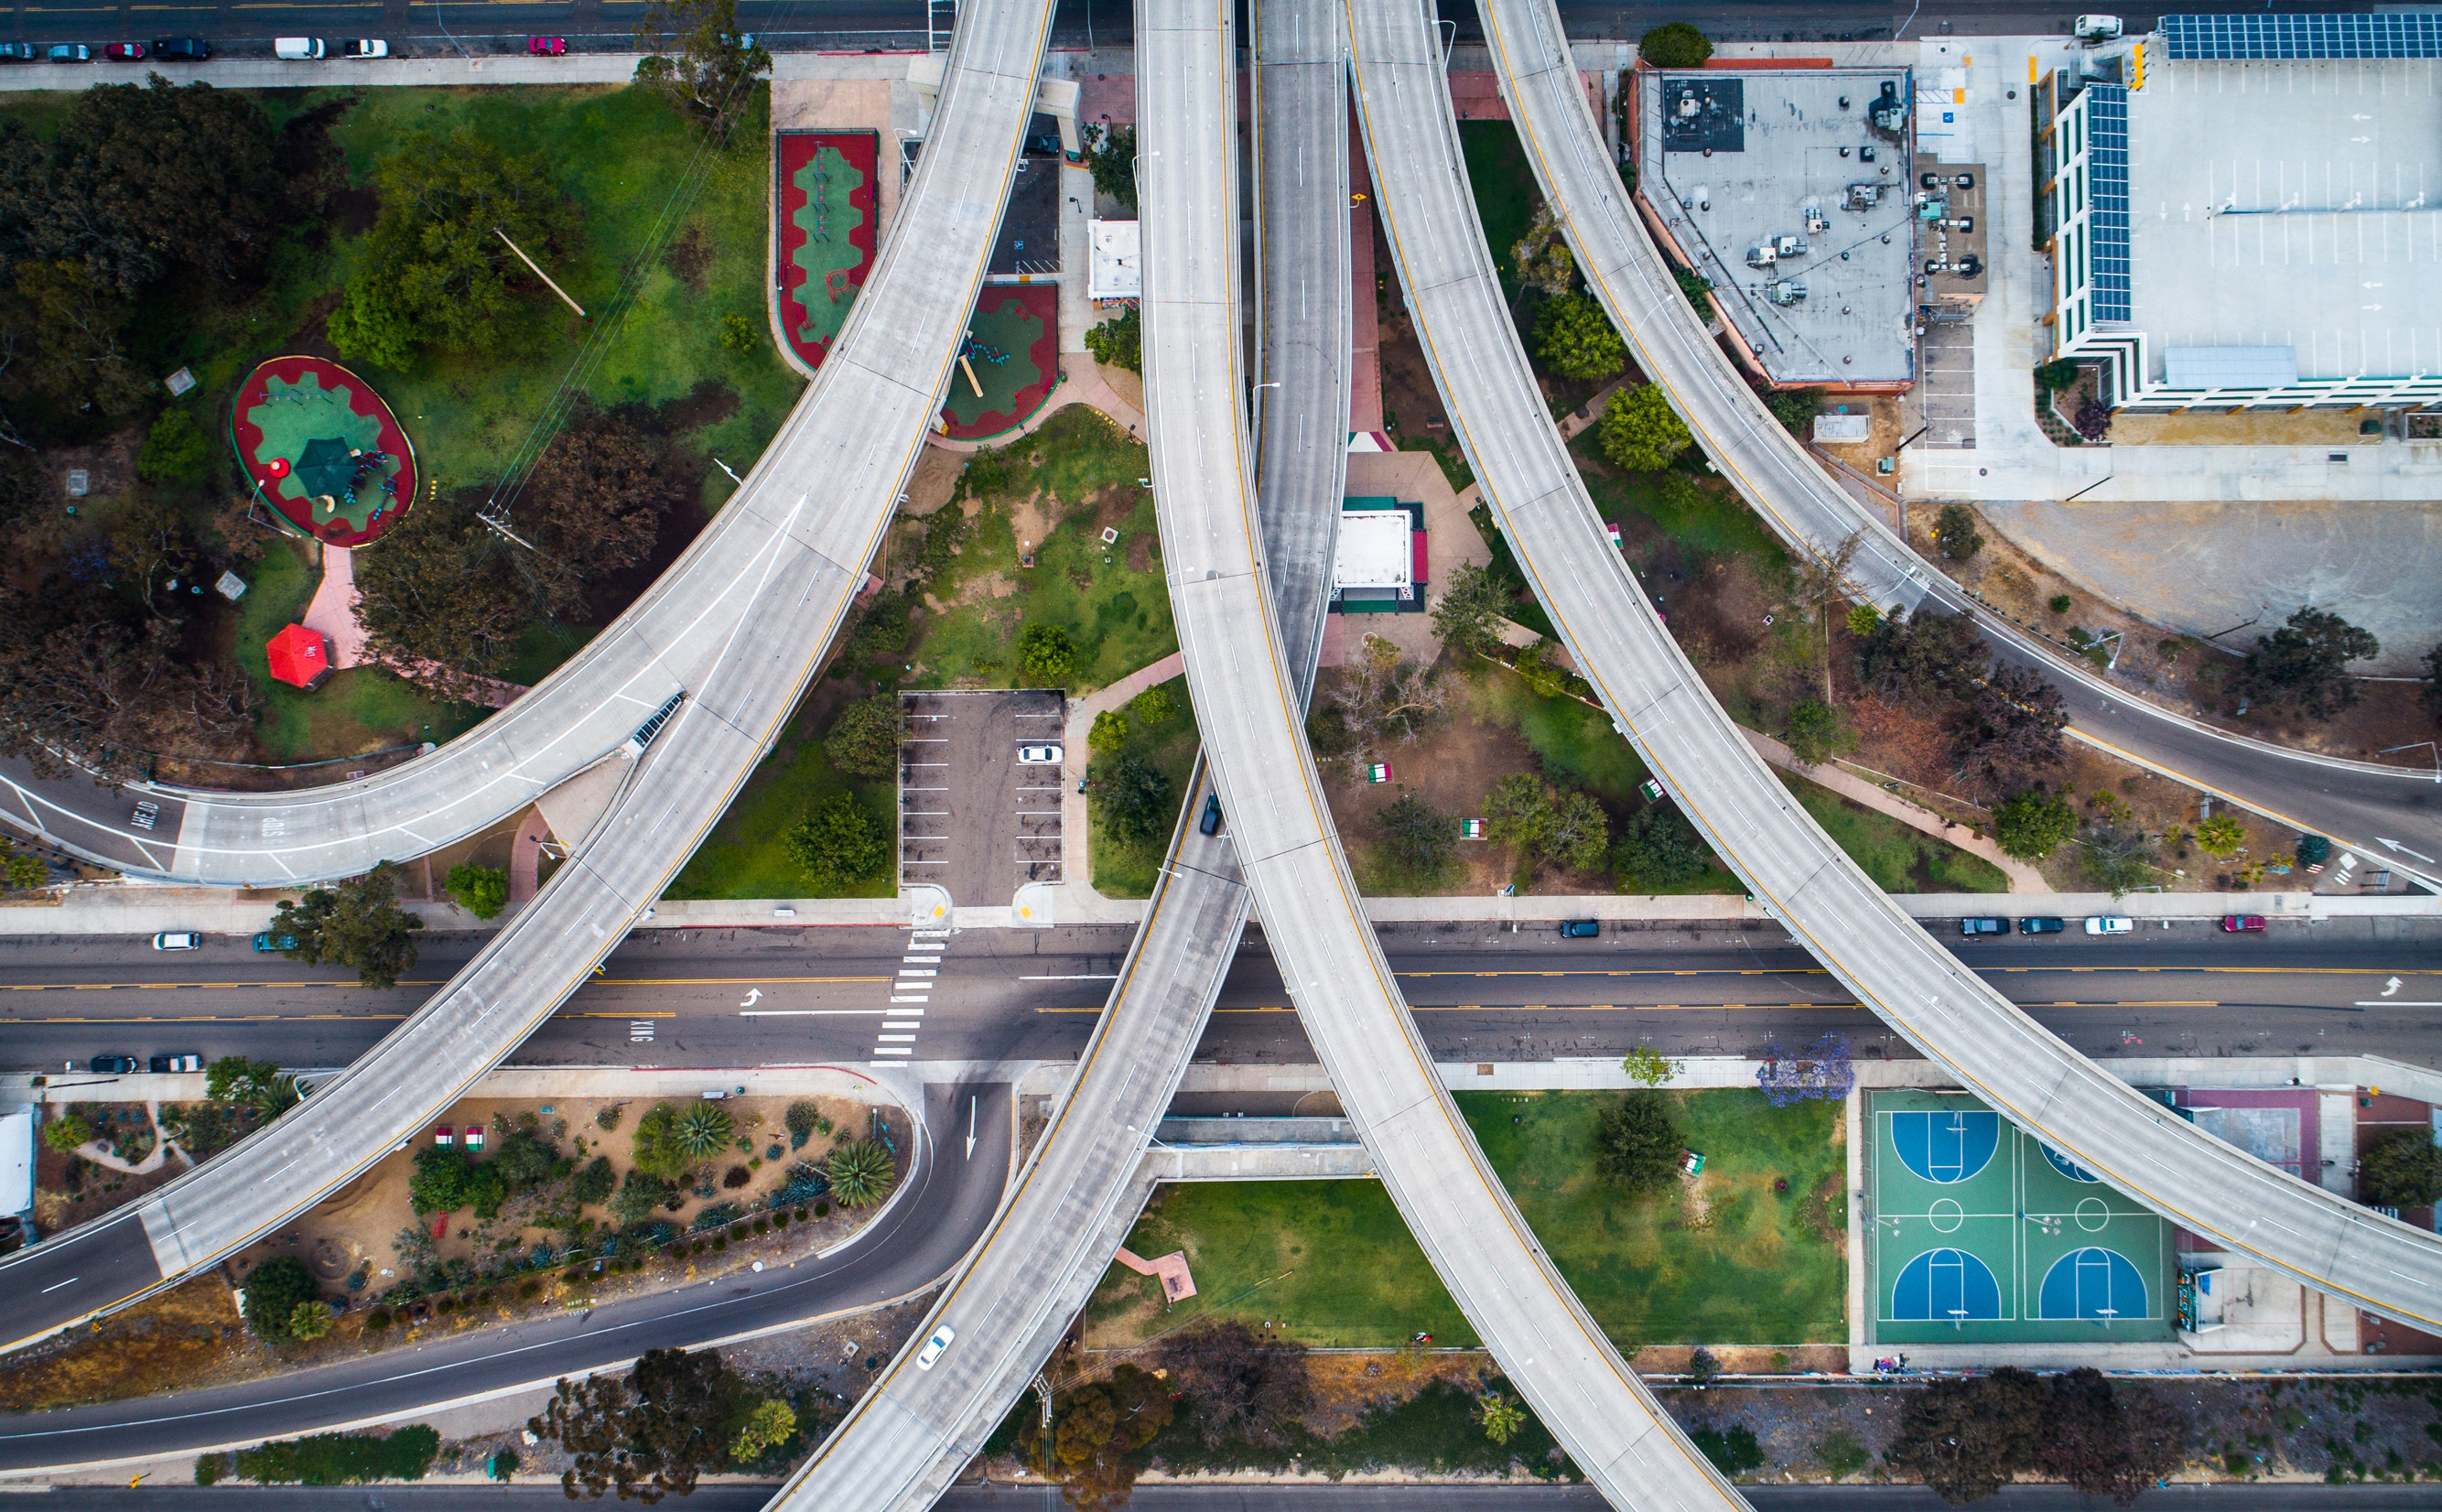 Image by Abraham Barrera - several roads converge into one, aerial view